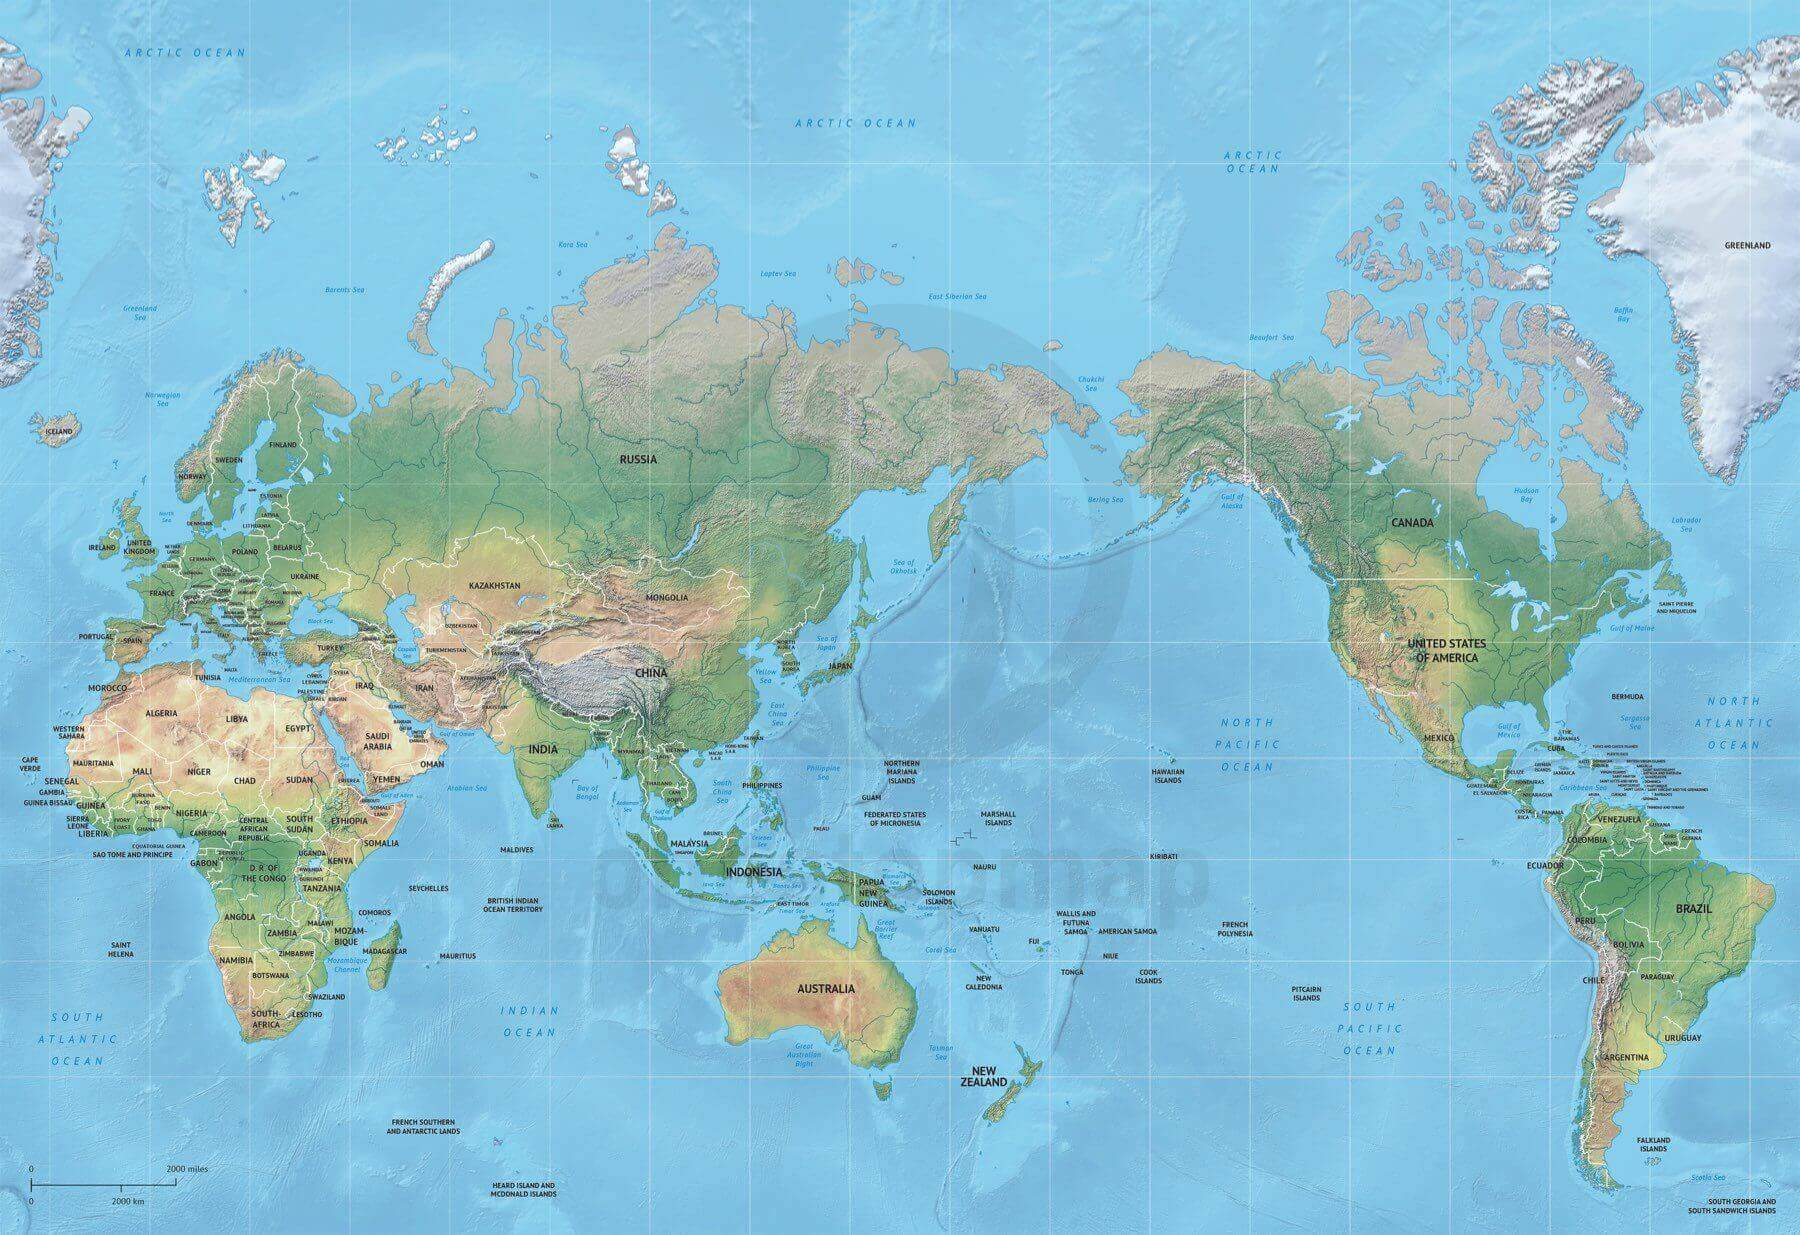 World Map With Australia.Map Of World Political Shaded Relief Mercator Asia Australia Centered